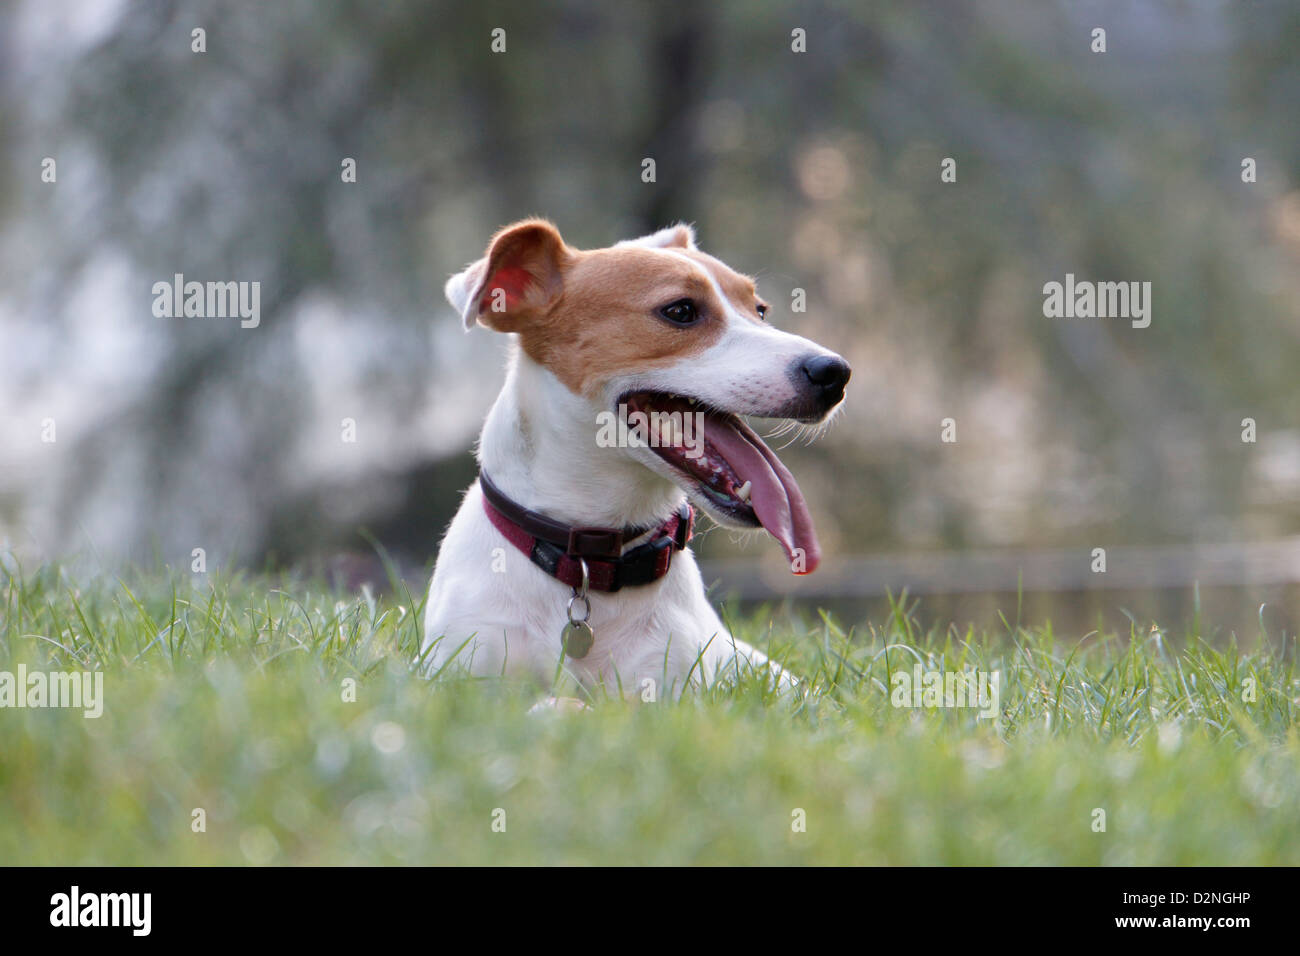 jack russell terrier dog pet panting tongue - Stock Image